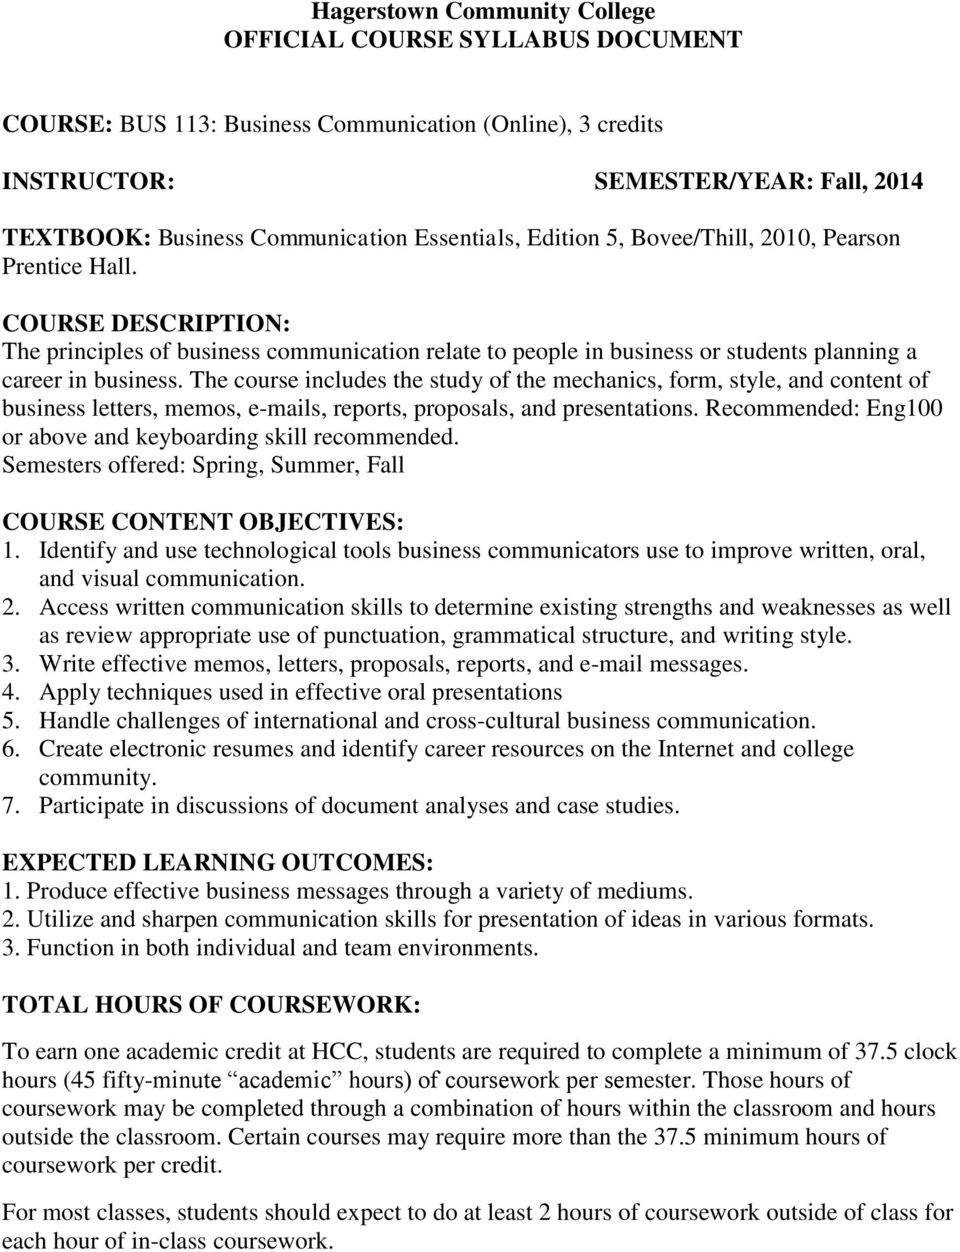 Hagerstown Community College Official Course Syllabus Document